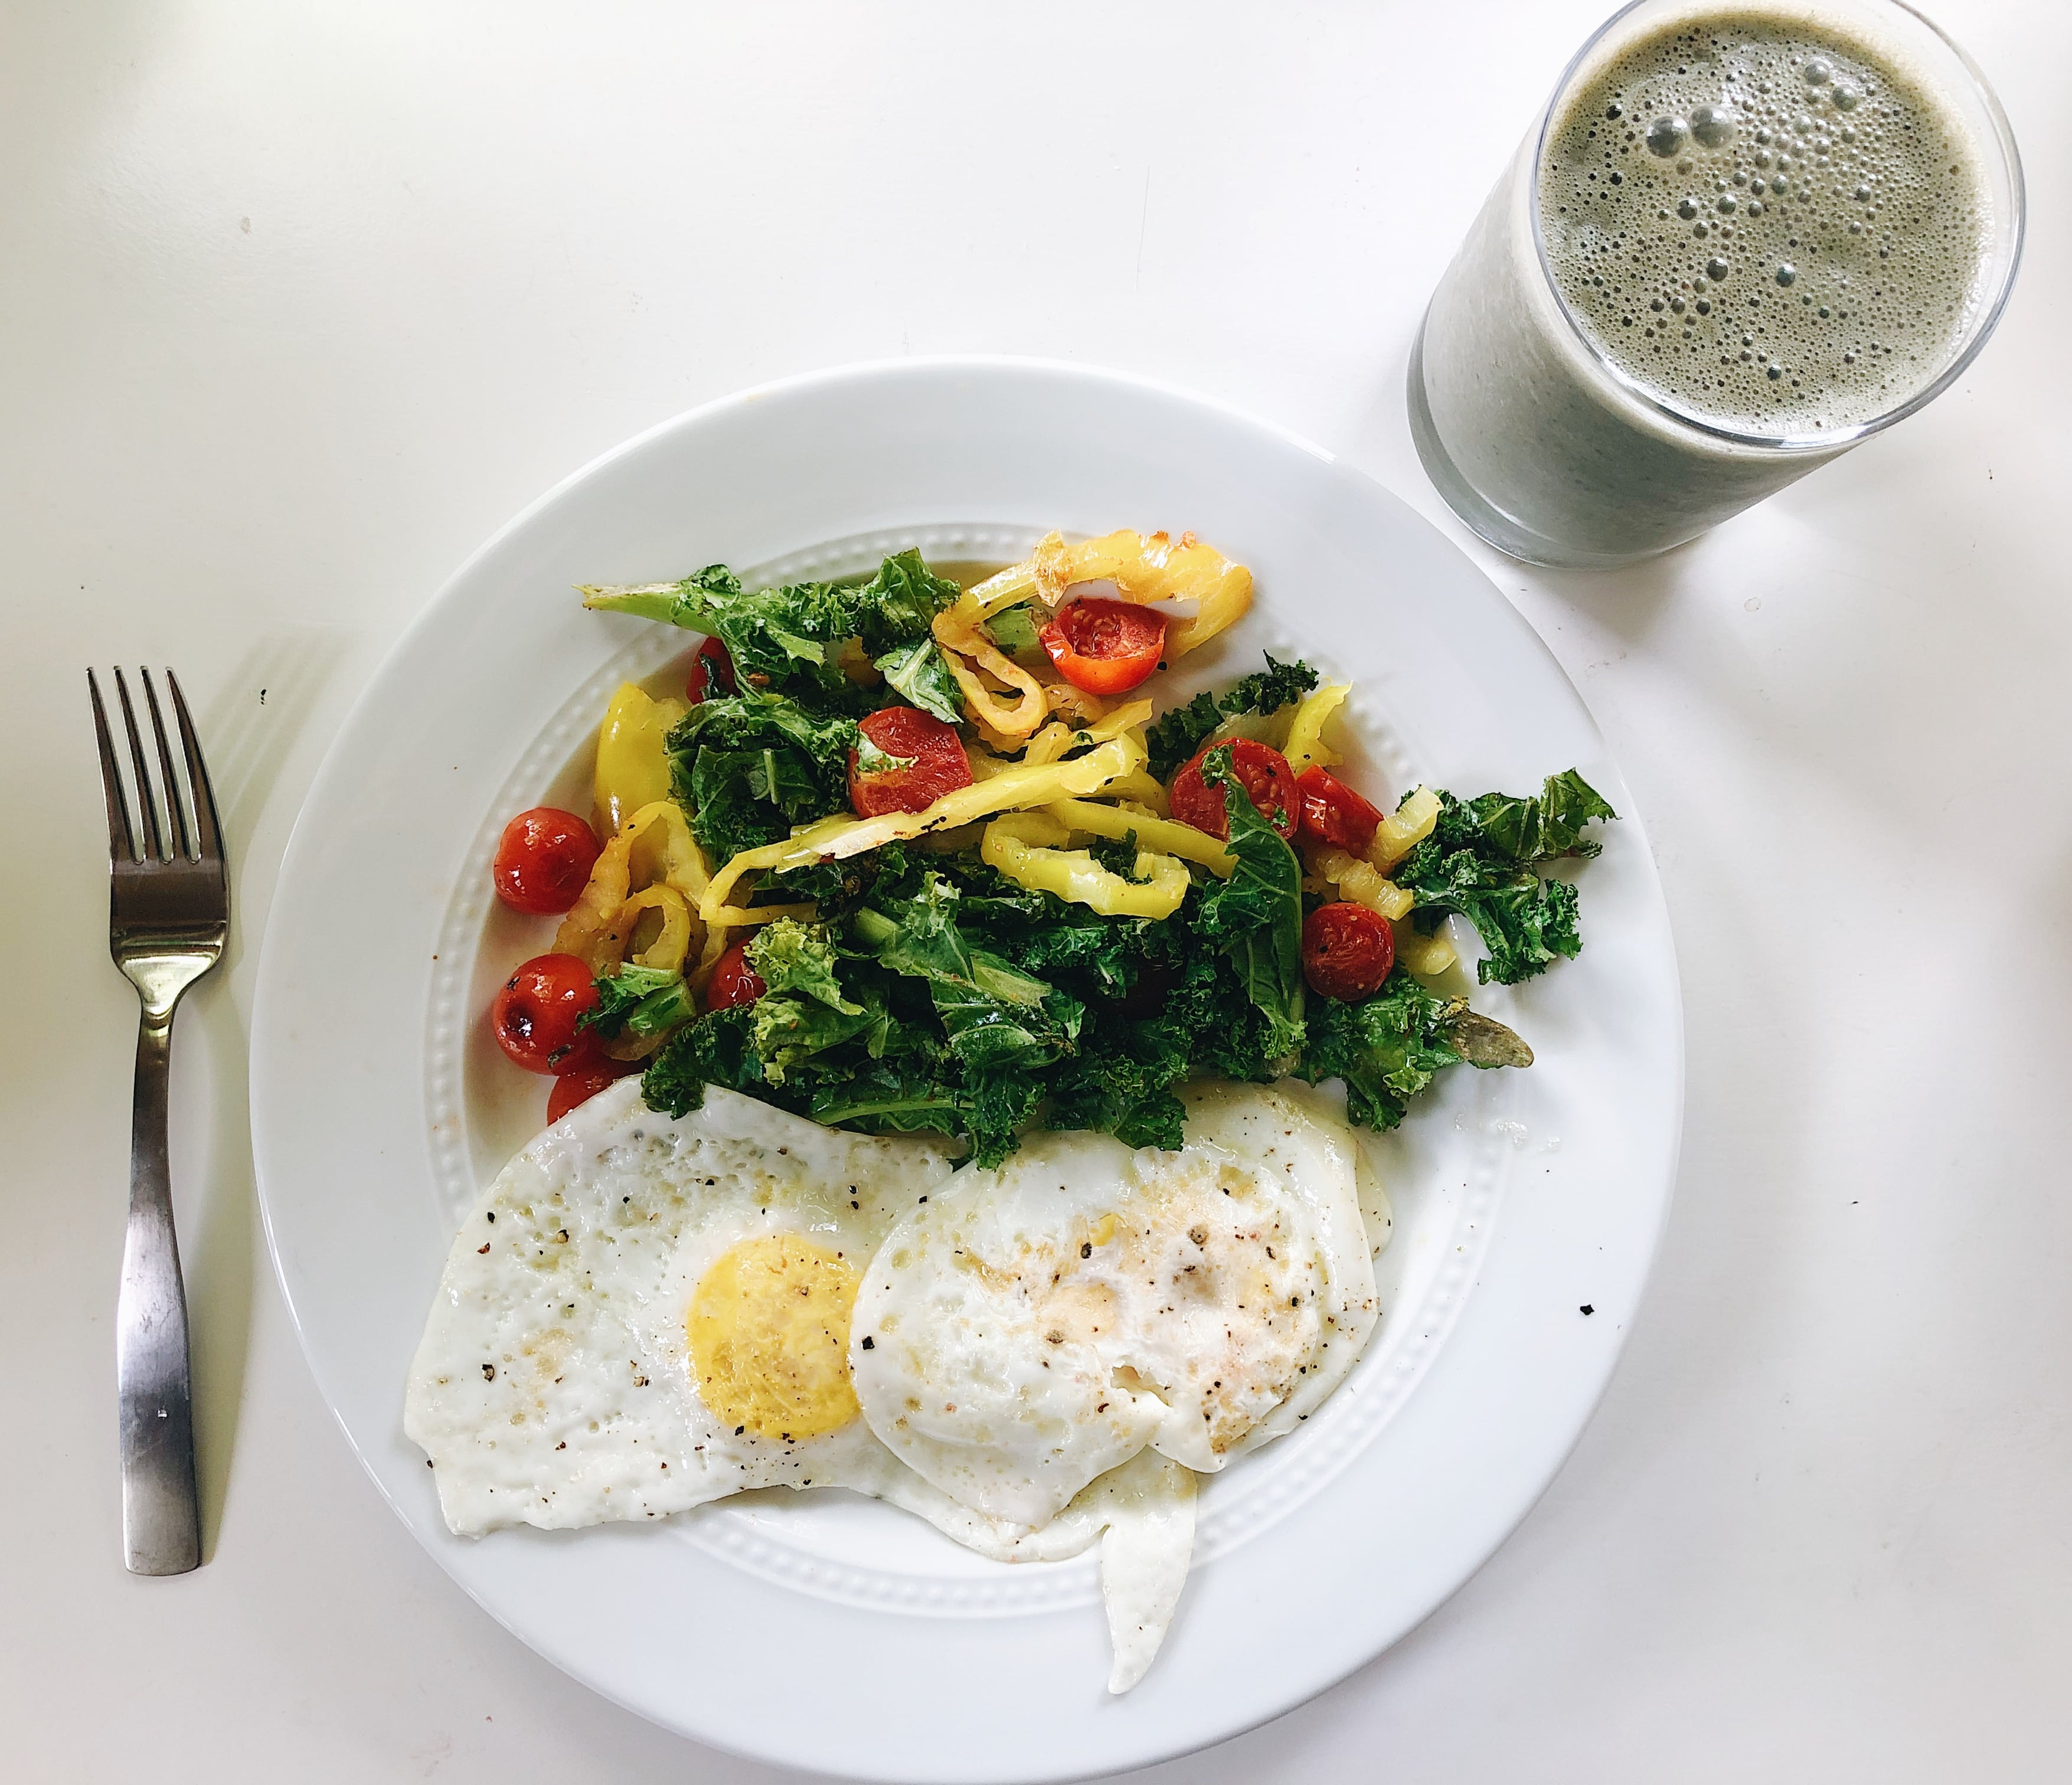 Eggs Kale Banana Peppers Tomatoes and Daily Greens Detox Smoothie